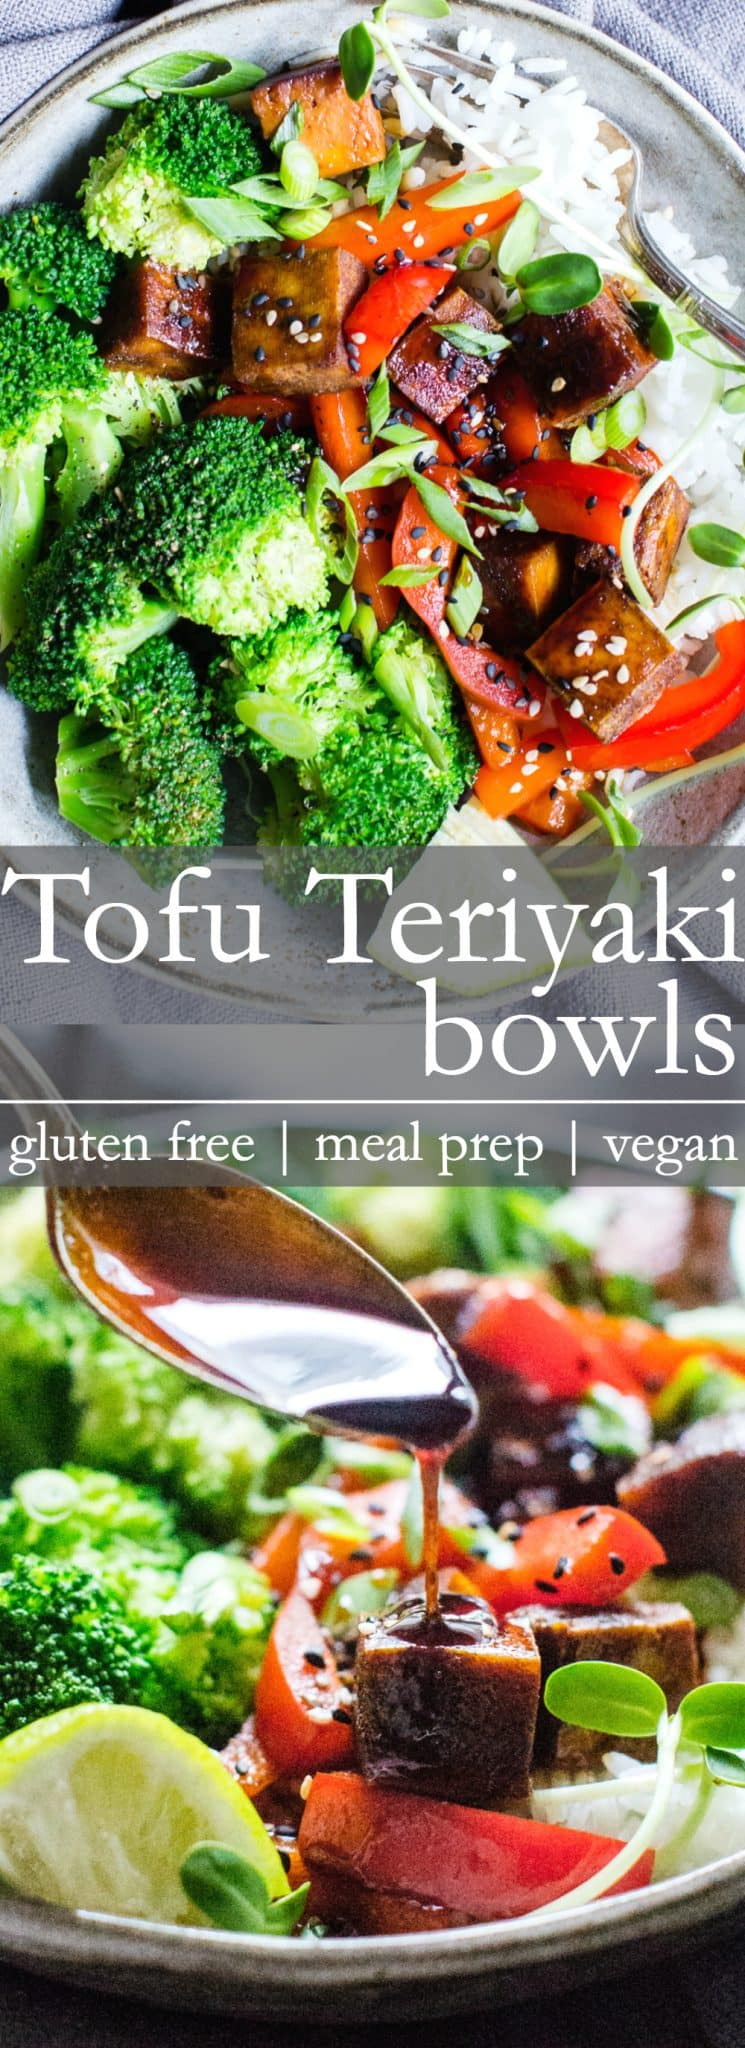 With a little meal prep, these Speedy Tofu Teriyaki Bowls come together with ease for a simple and flavor-packed weeknight dinner. #TofuBowls #VeganTofu #GlutenFreeVeganDinner #MarinatedTofu #TeriyakiBowls